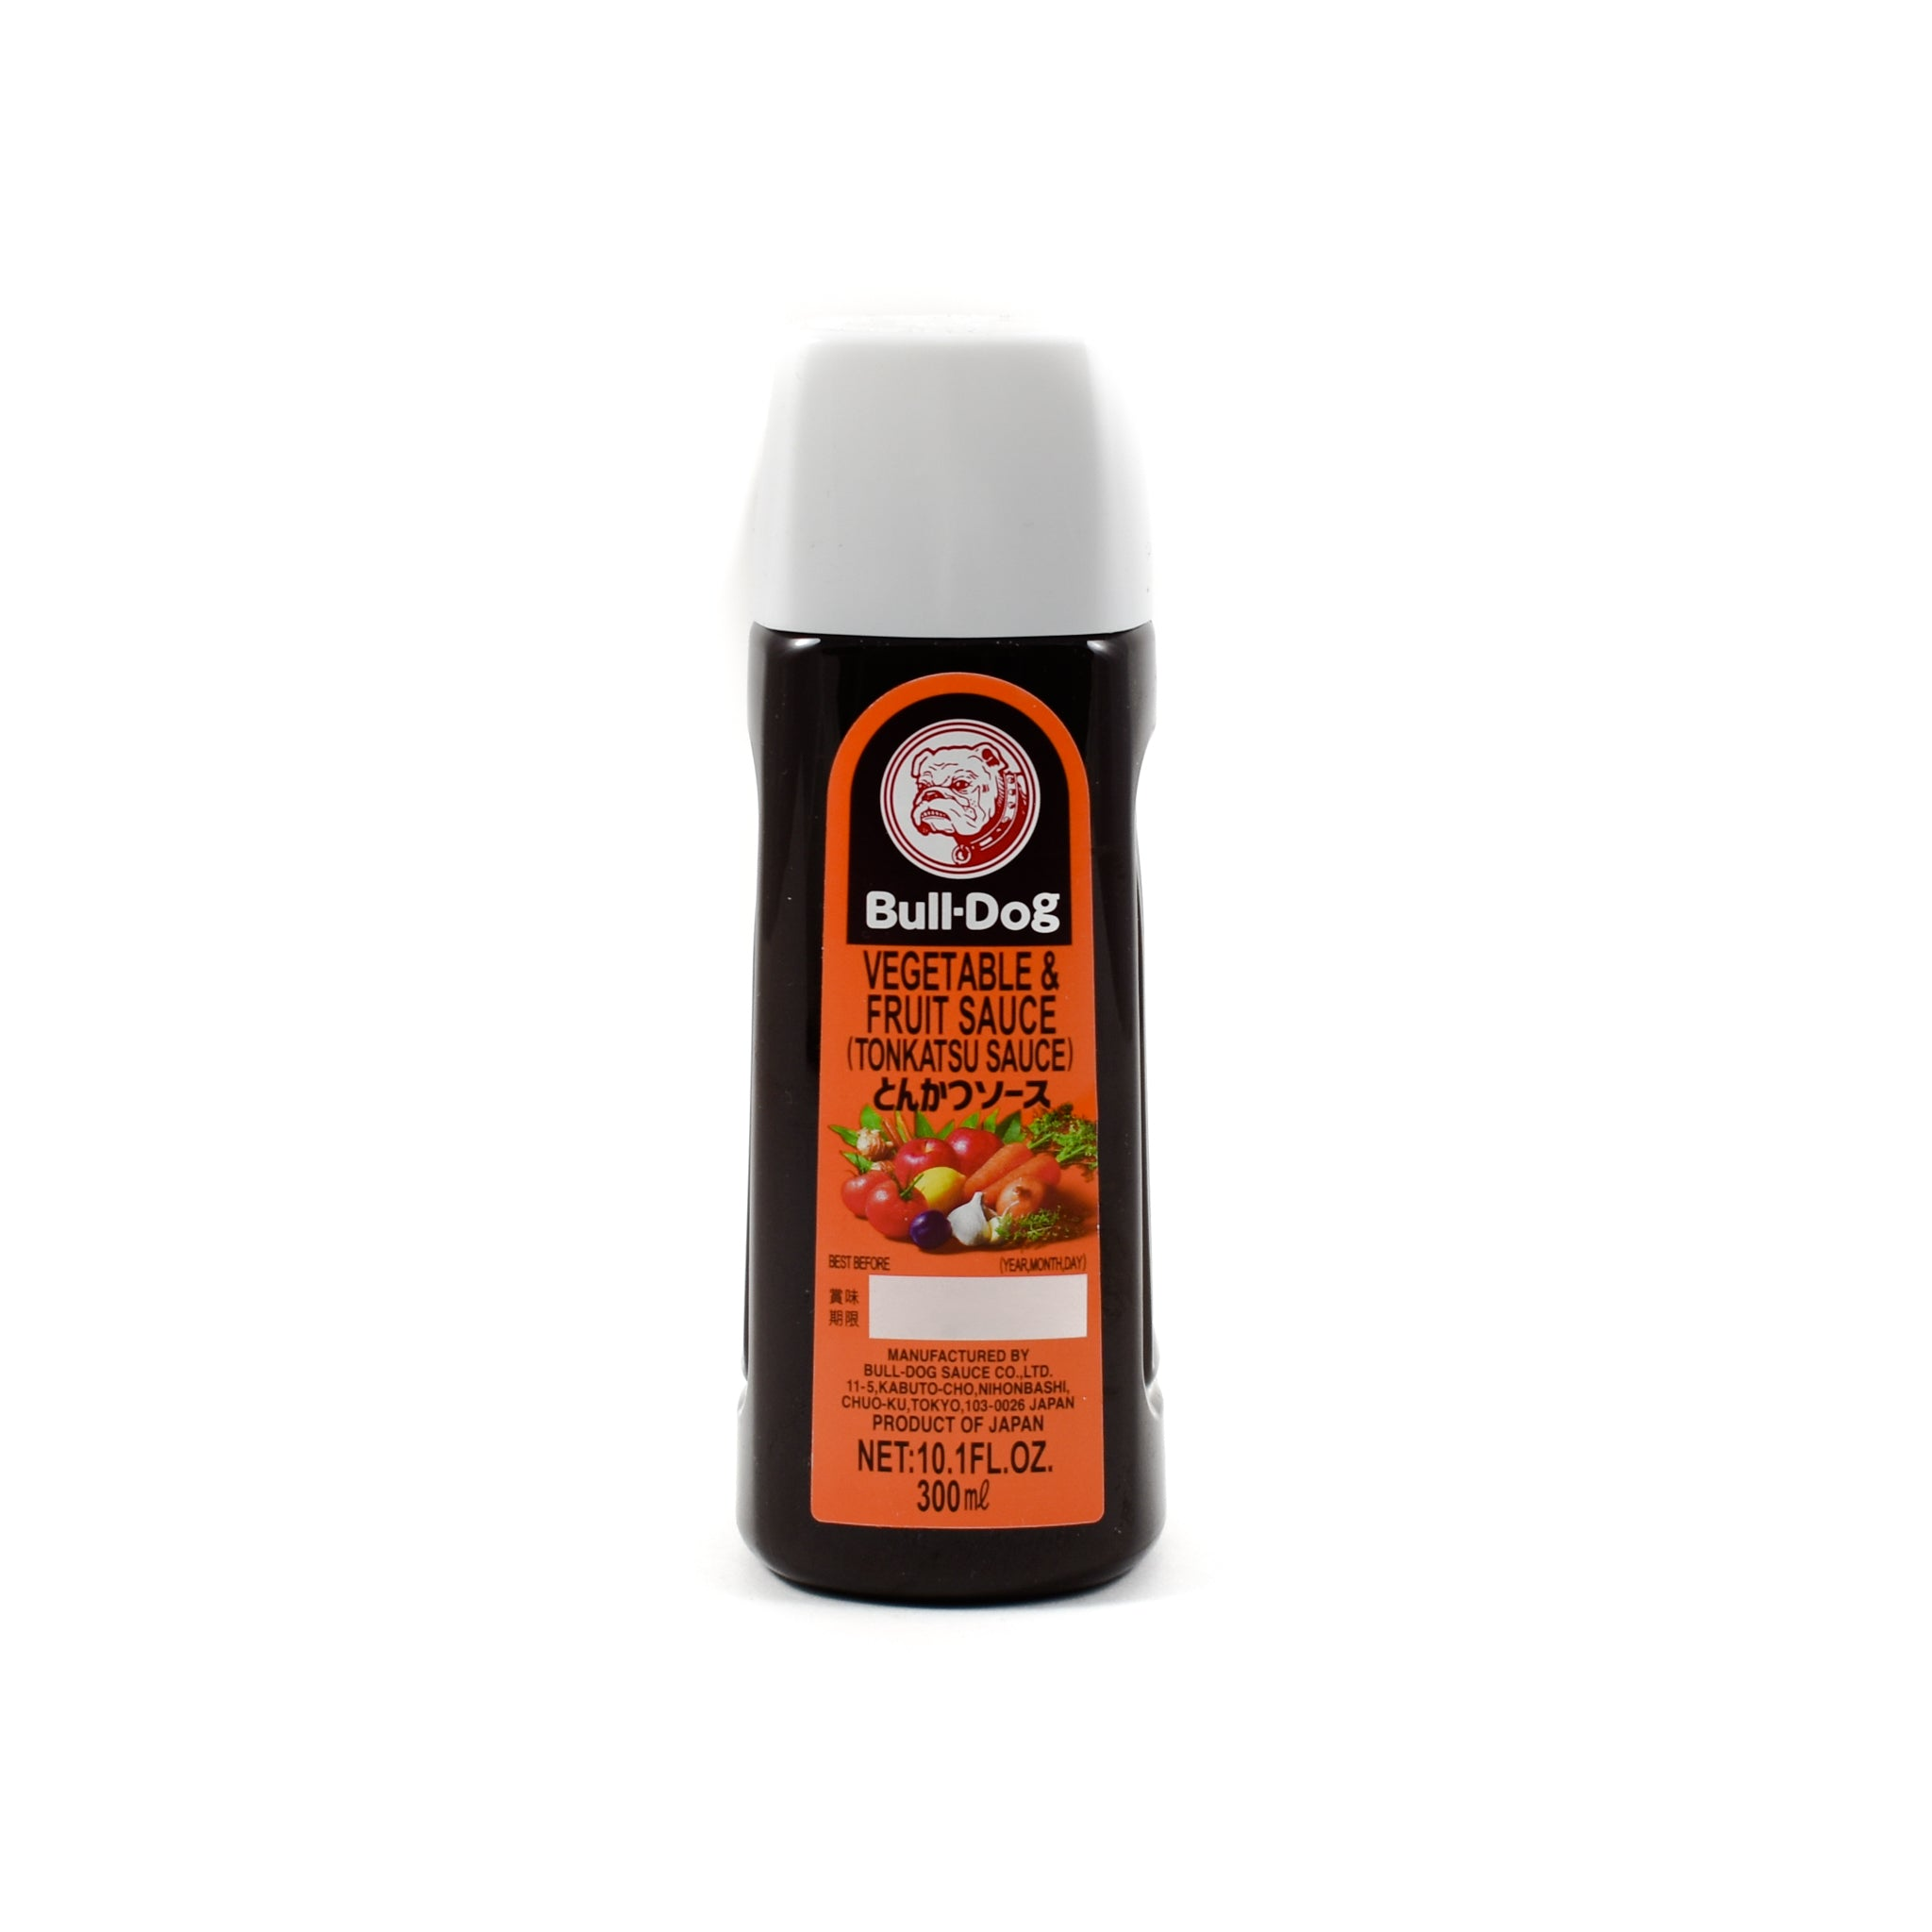 Bulldog Tonkatsu Sauce 300ml Ingredients Sauces & Condiments Asian Sauces & Condiments Japanese Food